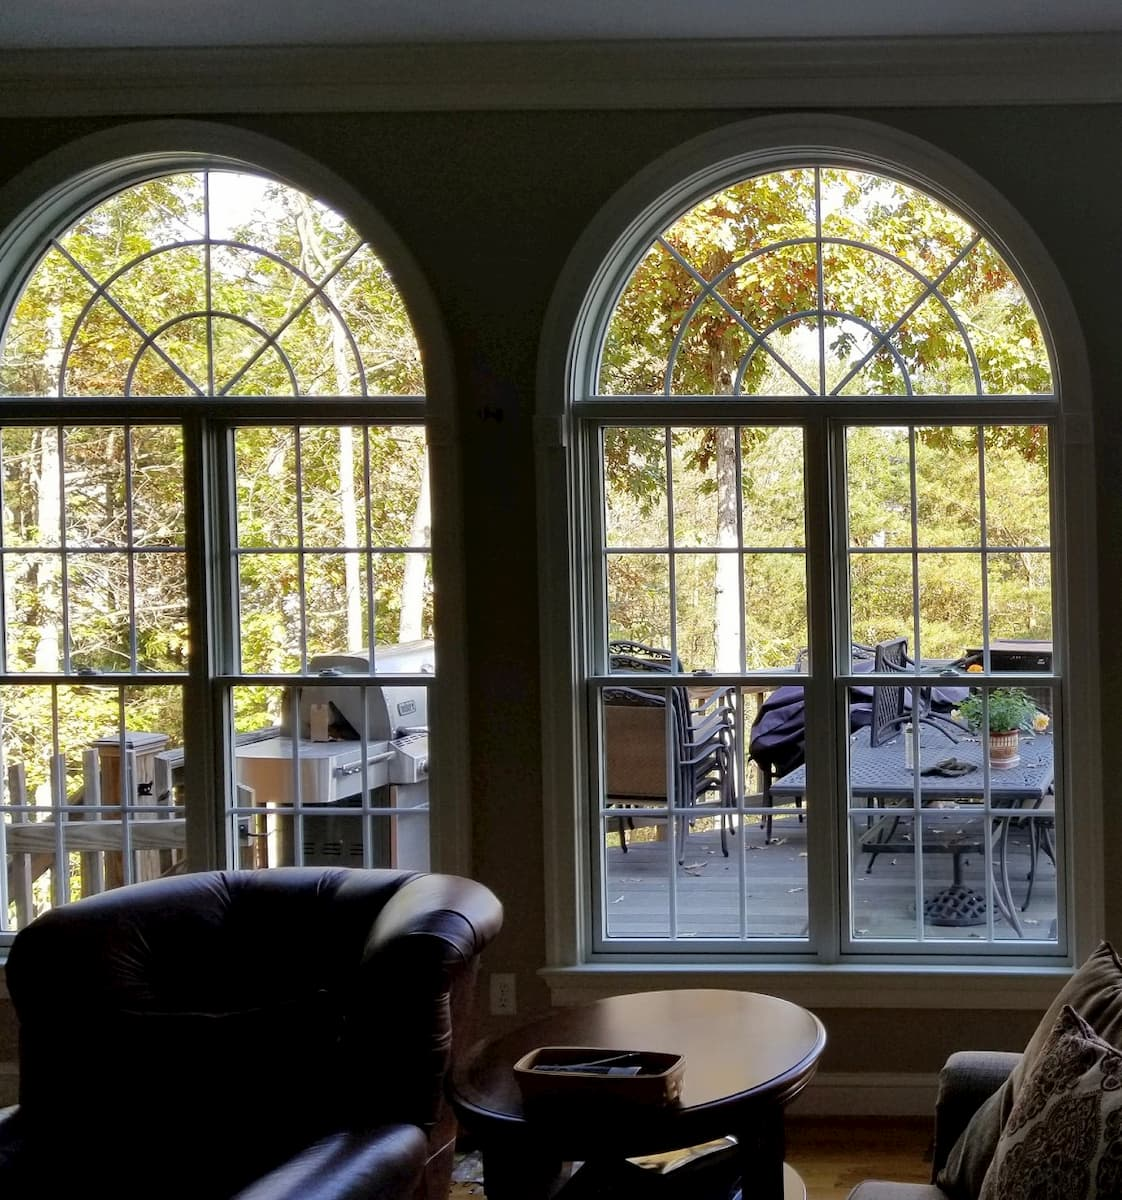 Interior view of wood double-hung windows with half-circle transoms and traditional grilles